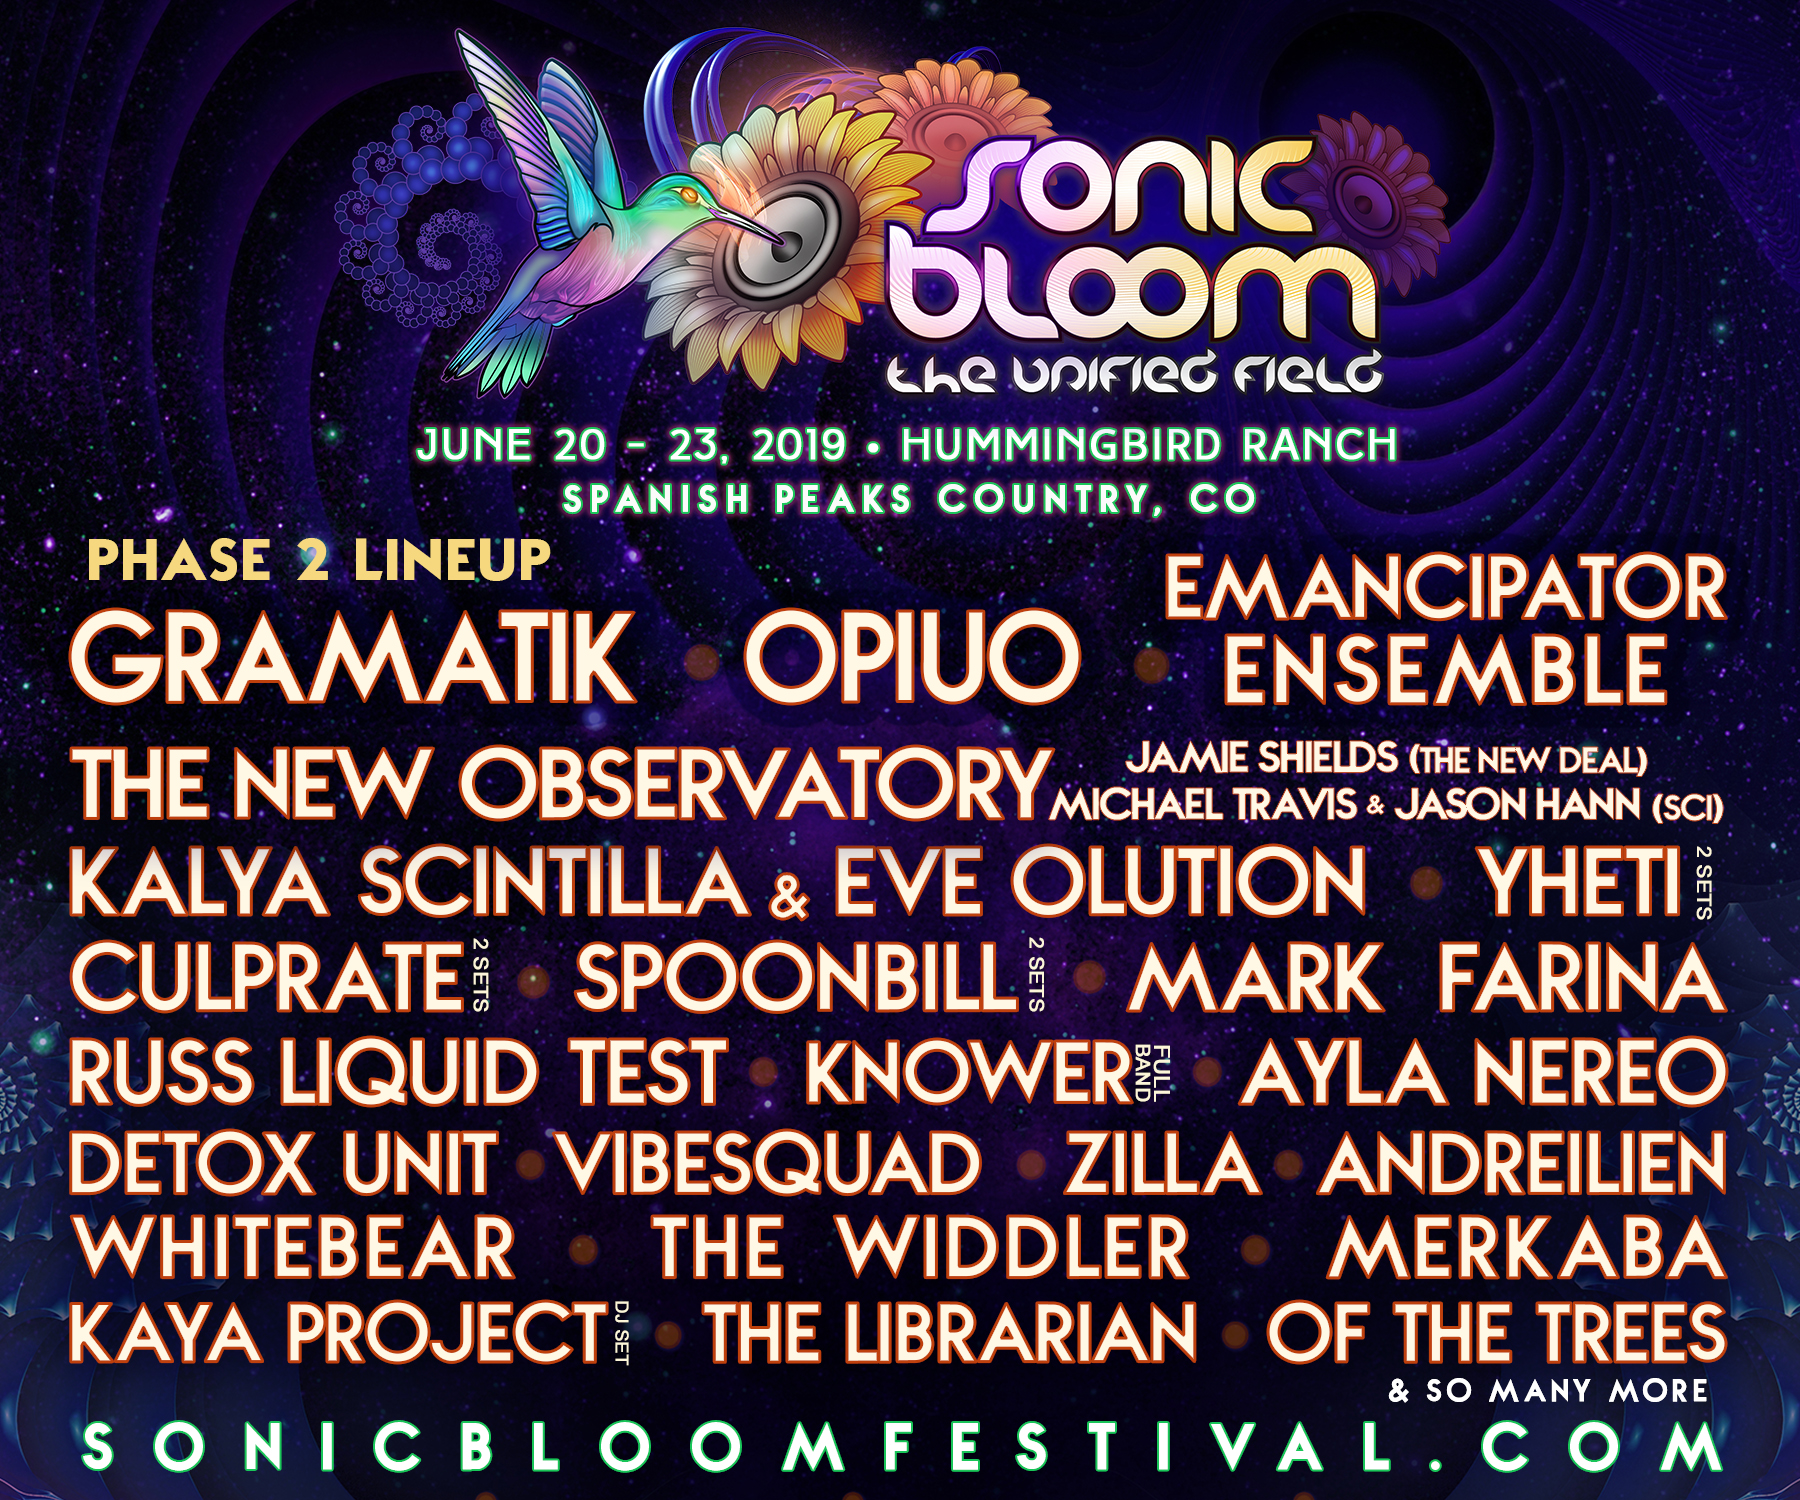 300x250 - SONIC BLOOM IG Friendly.jpg